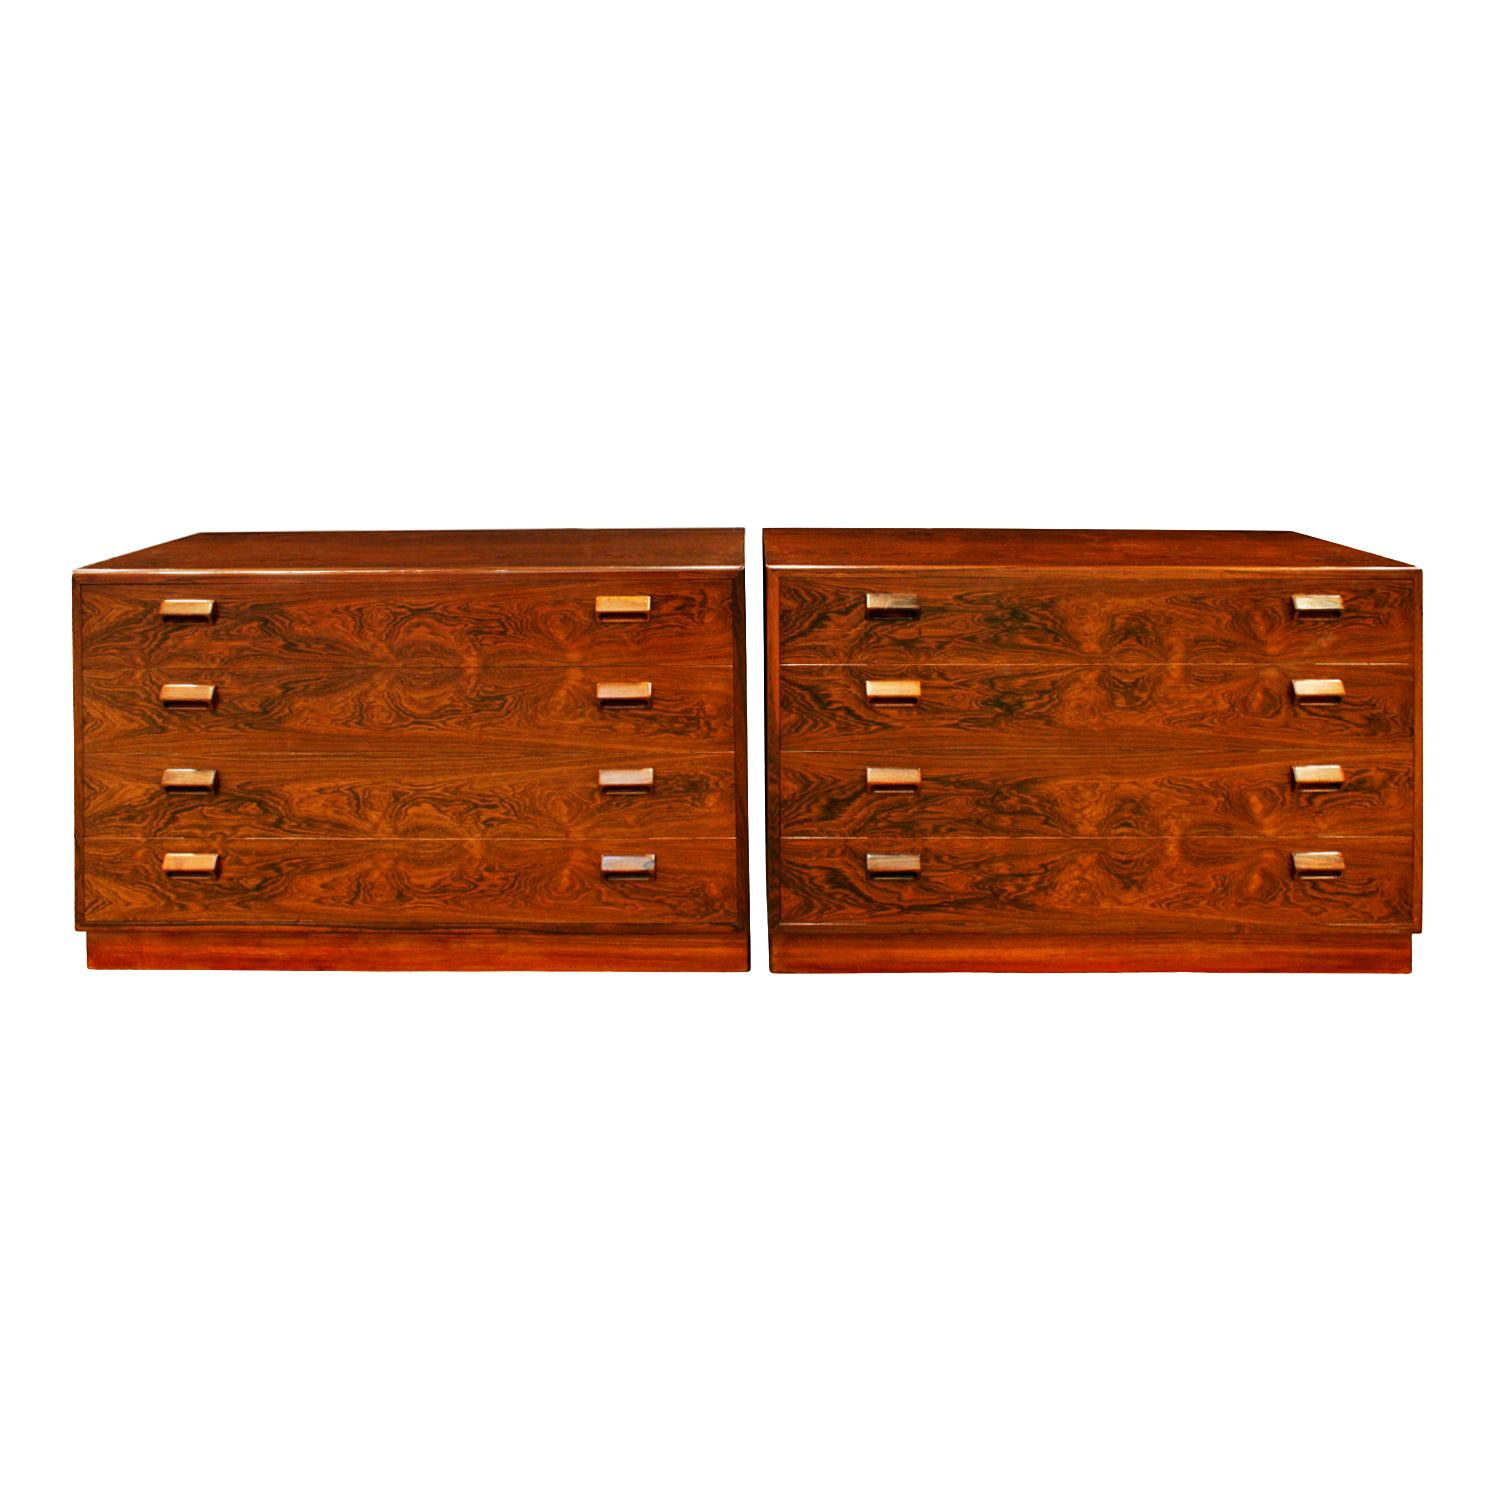 Antique Vintage Mid Century And Modern Furniture 518 900 For At 1stdibs